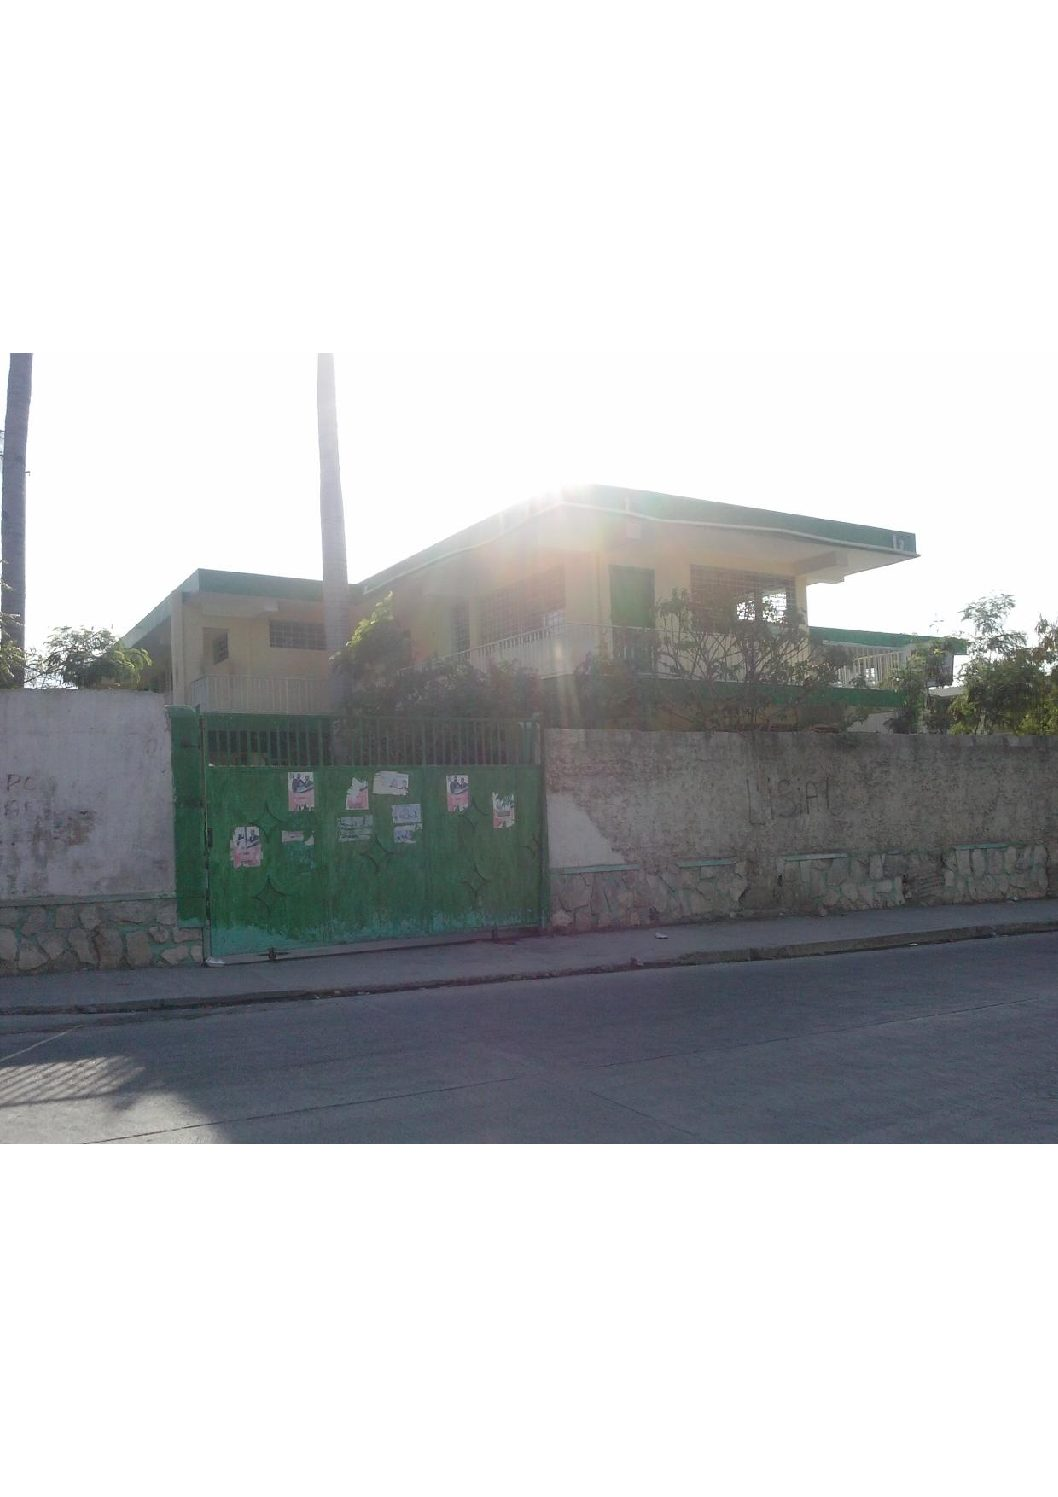 House for Sale in Delmas  TrouveMoi Immobilier Haiti Realty